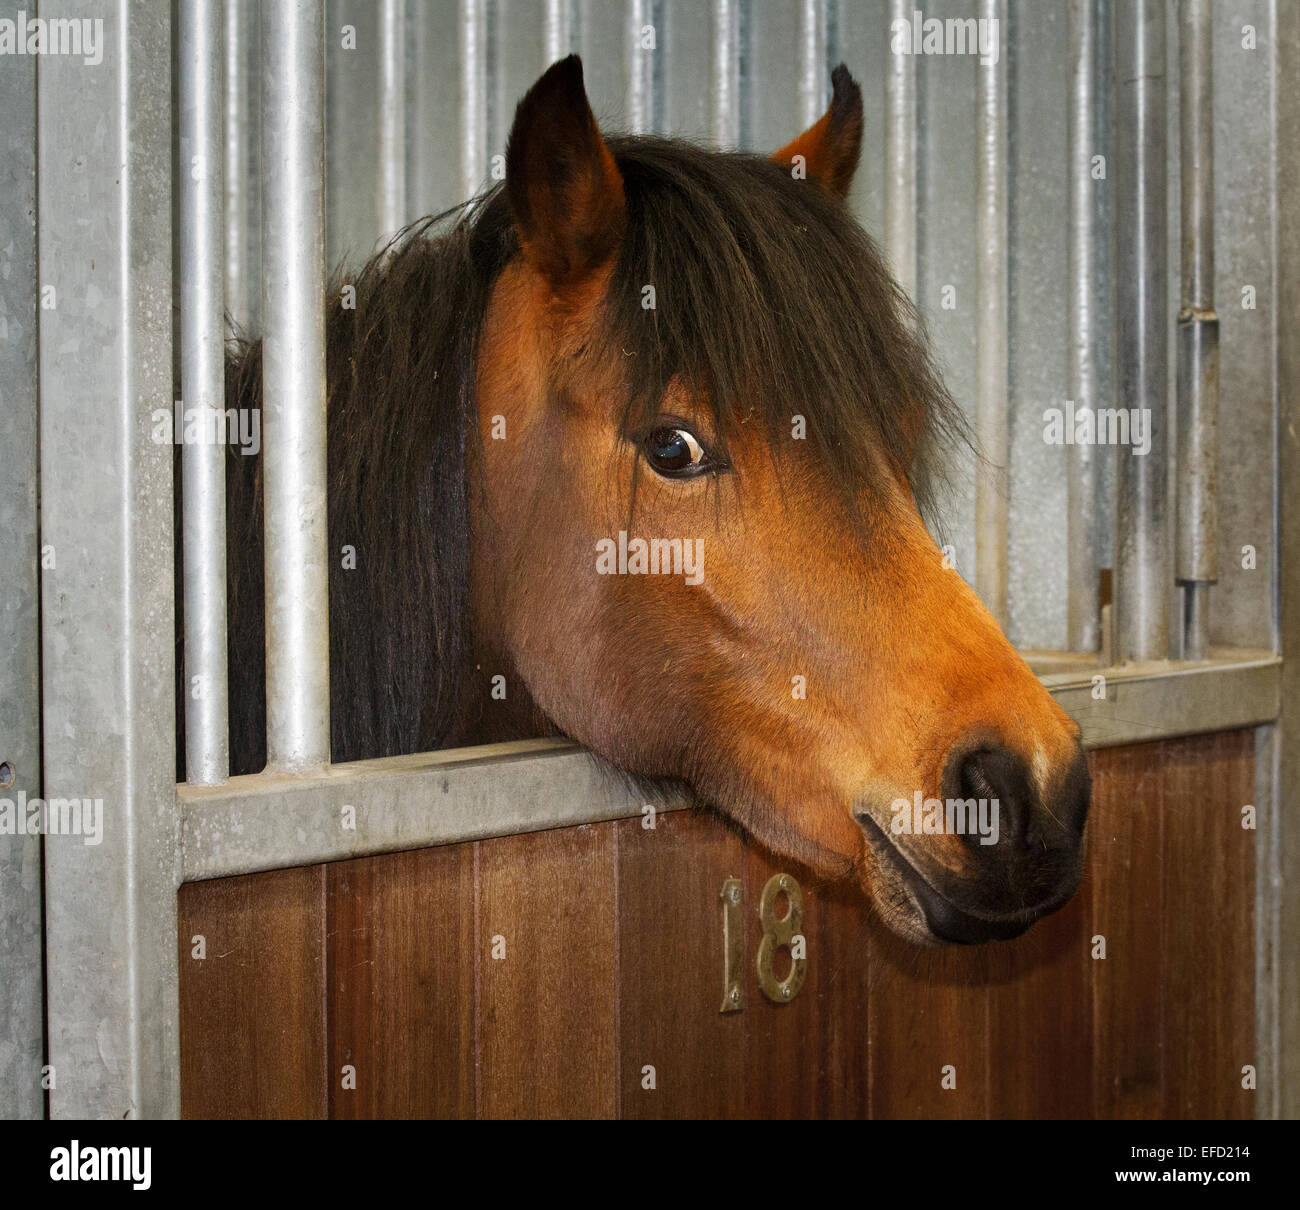 Funny horse faces at Blackpool, Lancashire, 31st January, 2015.  World Horse Welfare's Penny Farm is home to - Stock Image